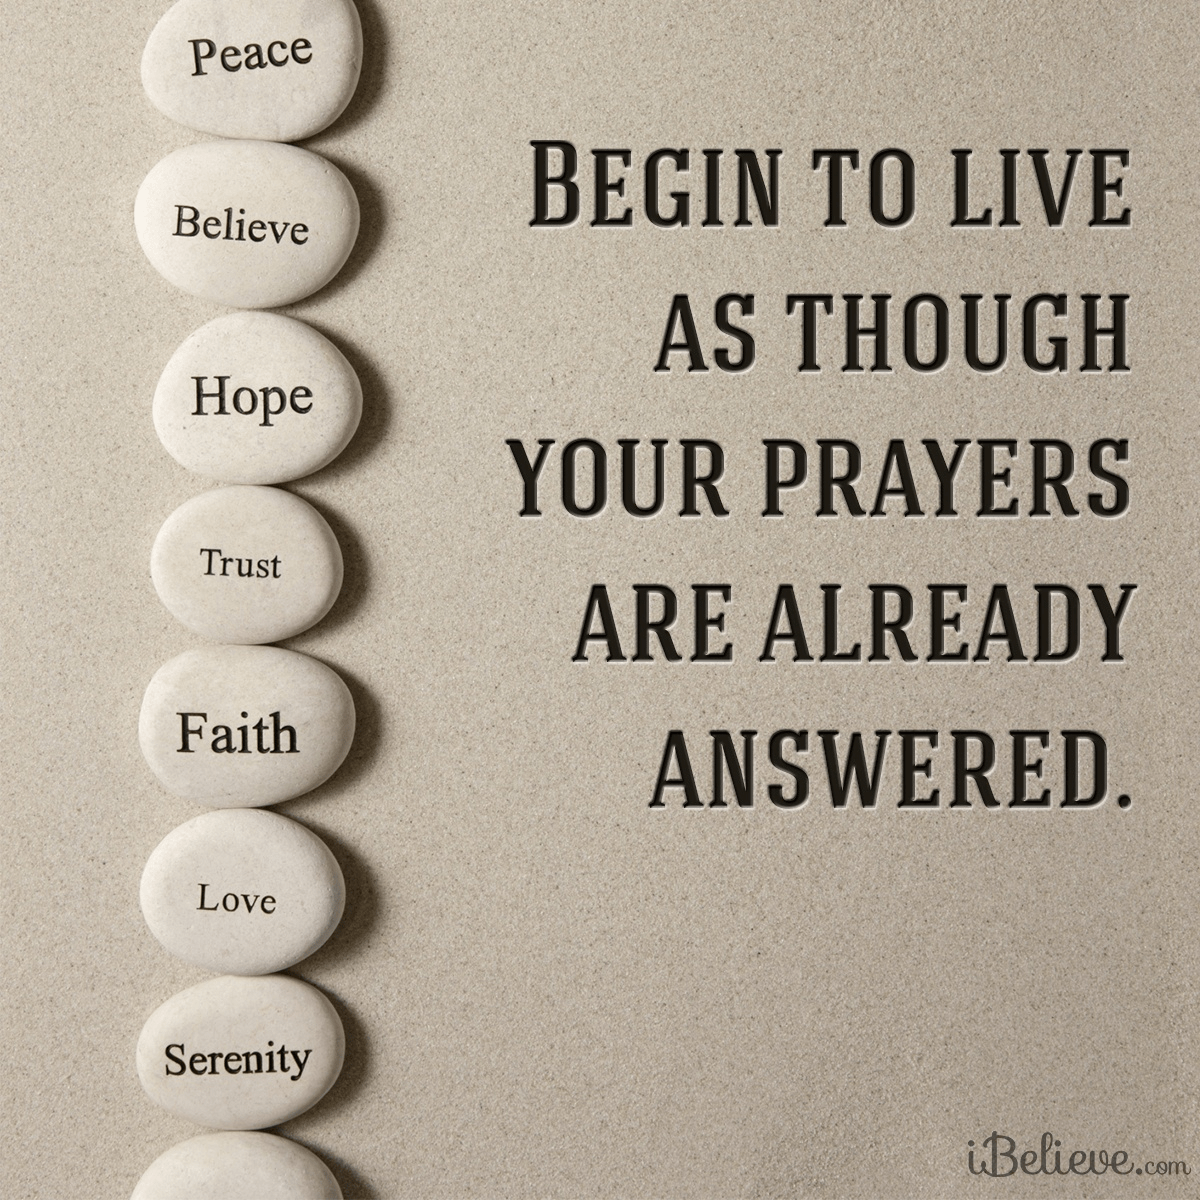 Begin to Live as Though Your Prayers are Already Answered